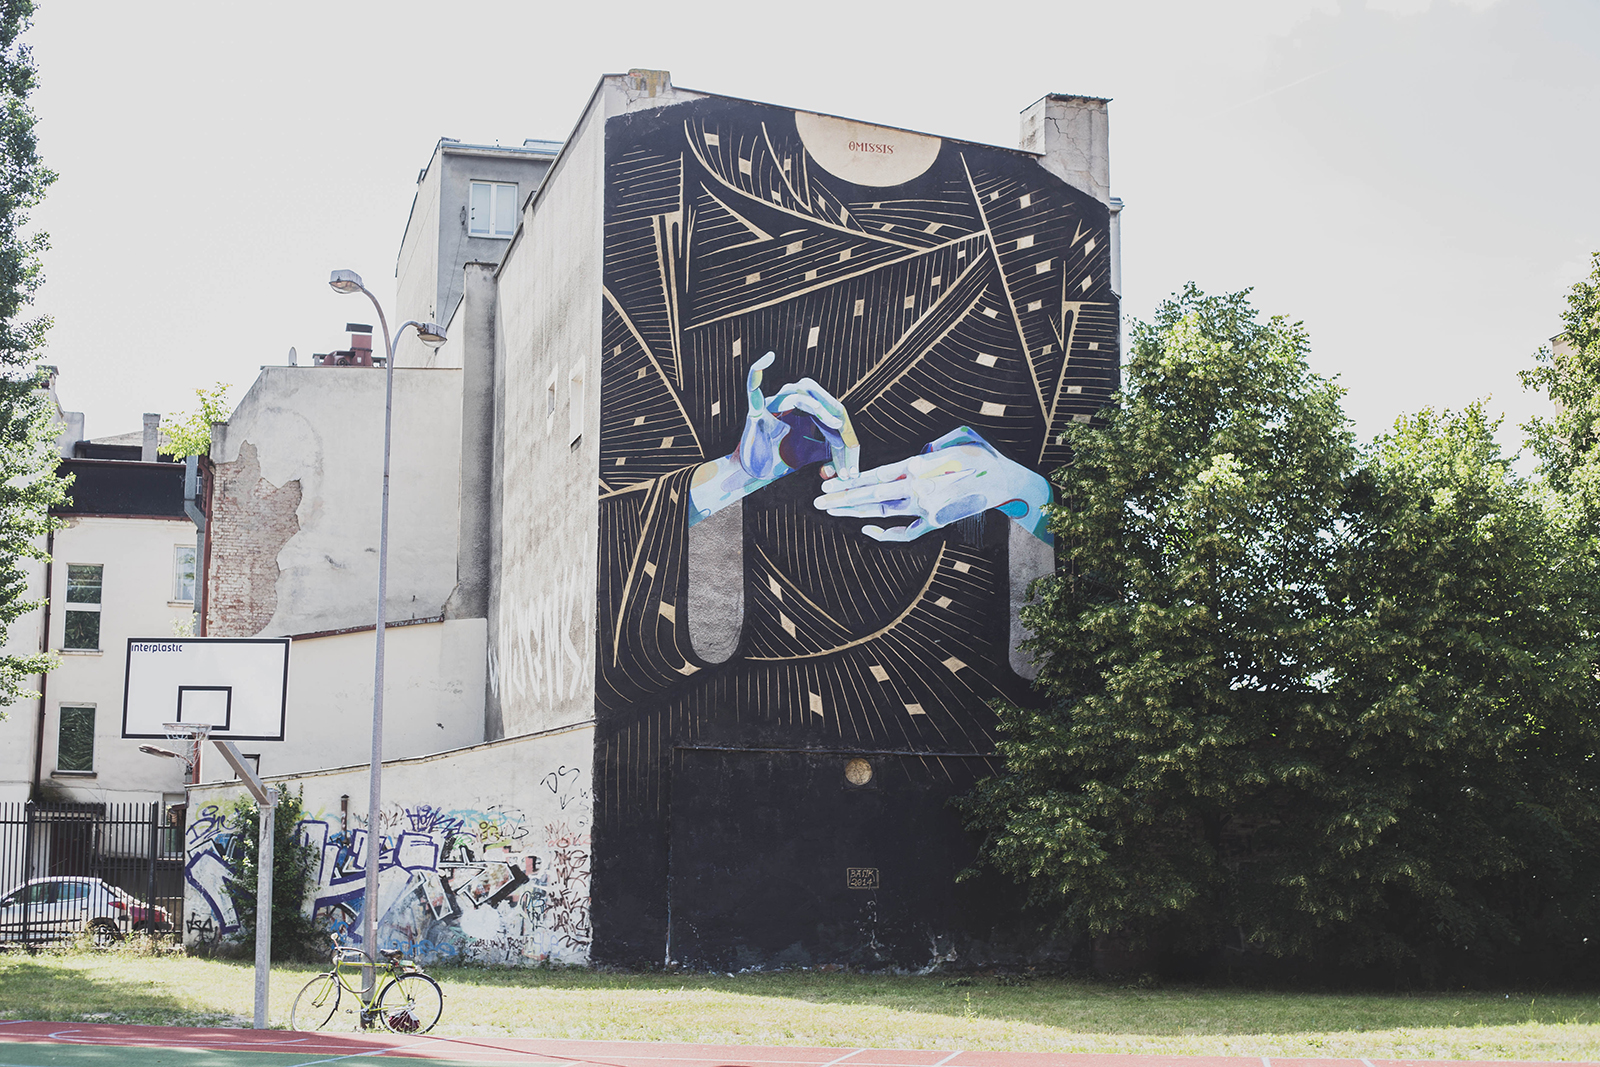 basik-new-mural-for-traffic-design-festival-2014-05